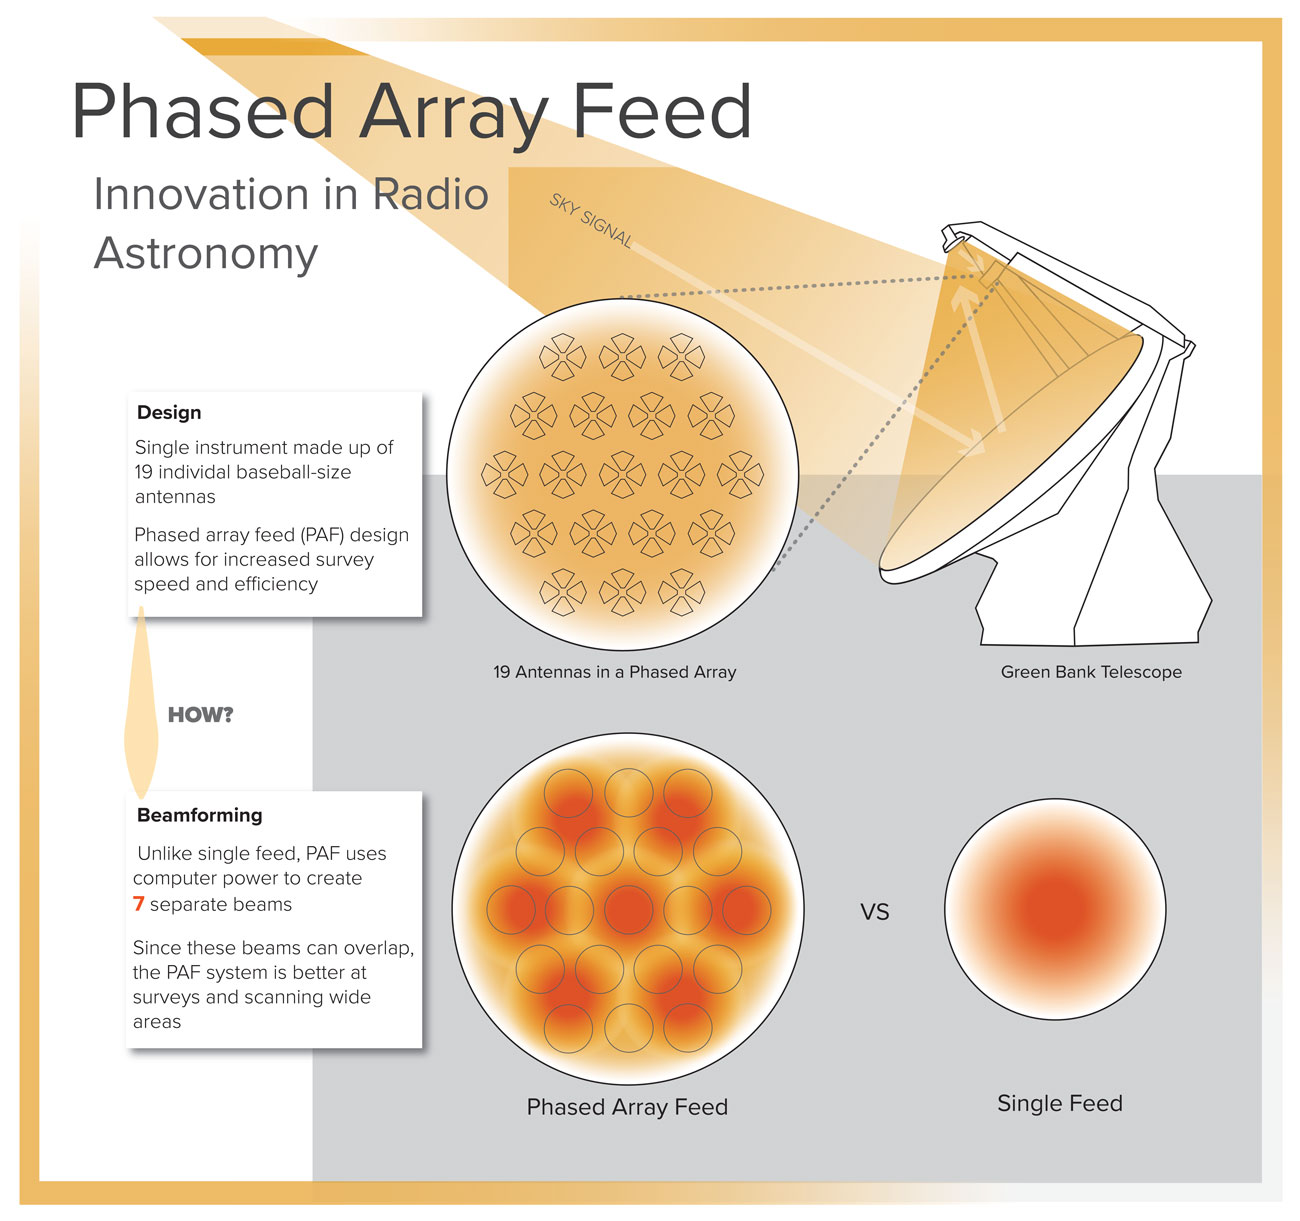 Innovation Advances 'Phased Array Feed' Imaging System